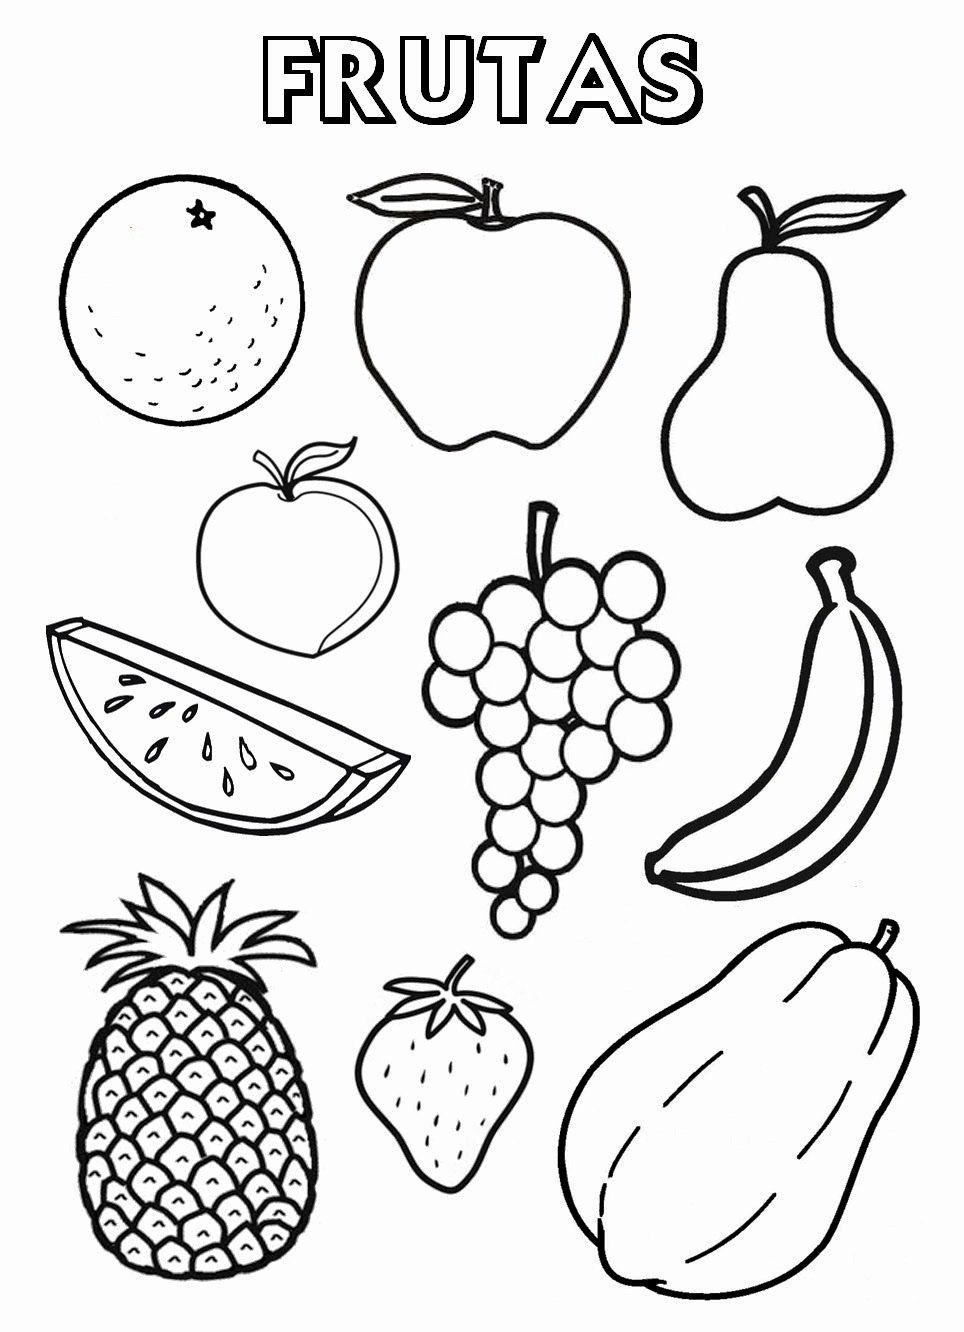 Coloring Book In Spanish New Free Spanish Coloring Worksheets Halloweenfiles Com Fruit Coloring Pages Fruits Drawing Coloring Pages